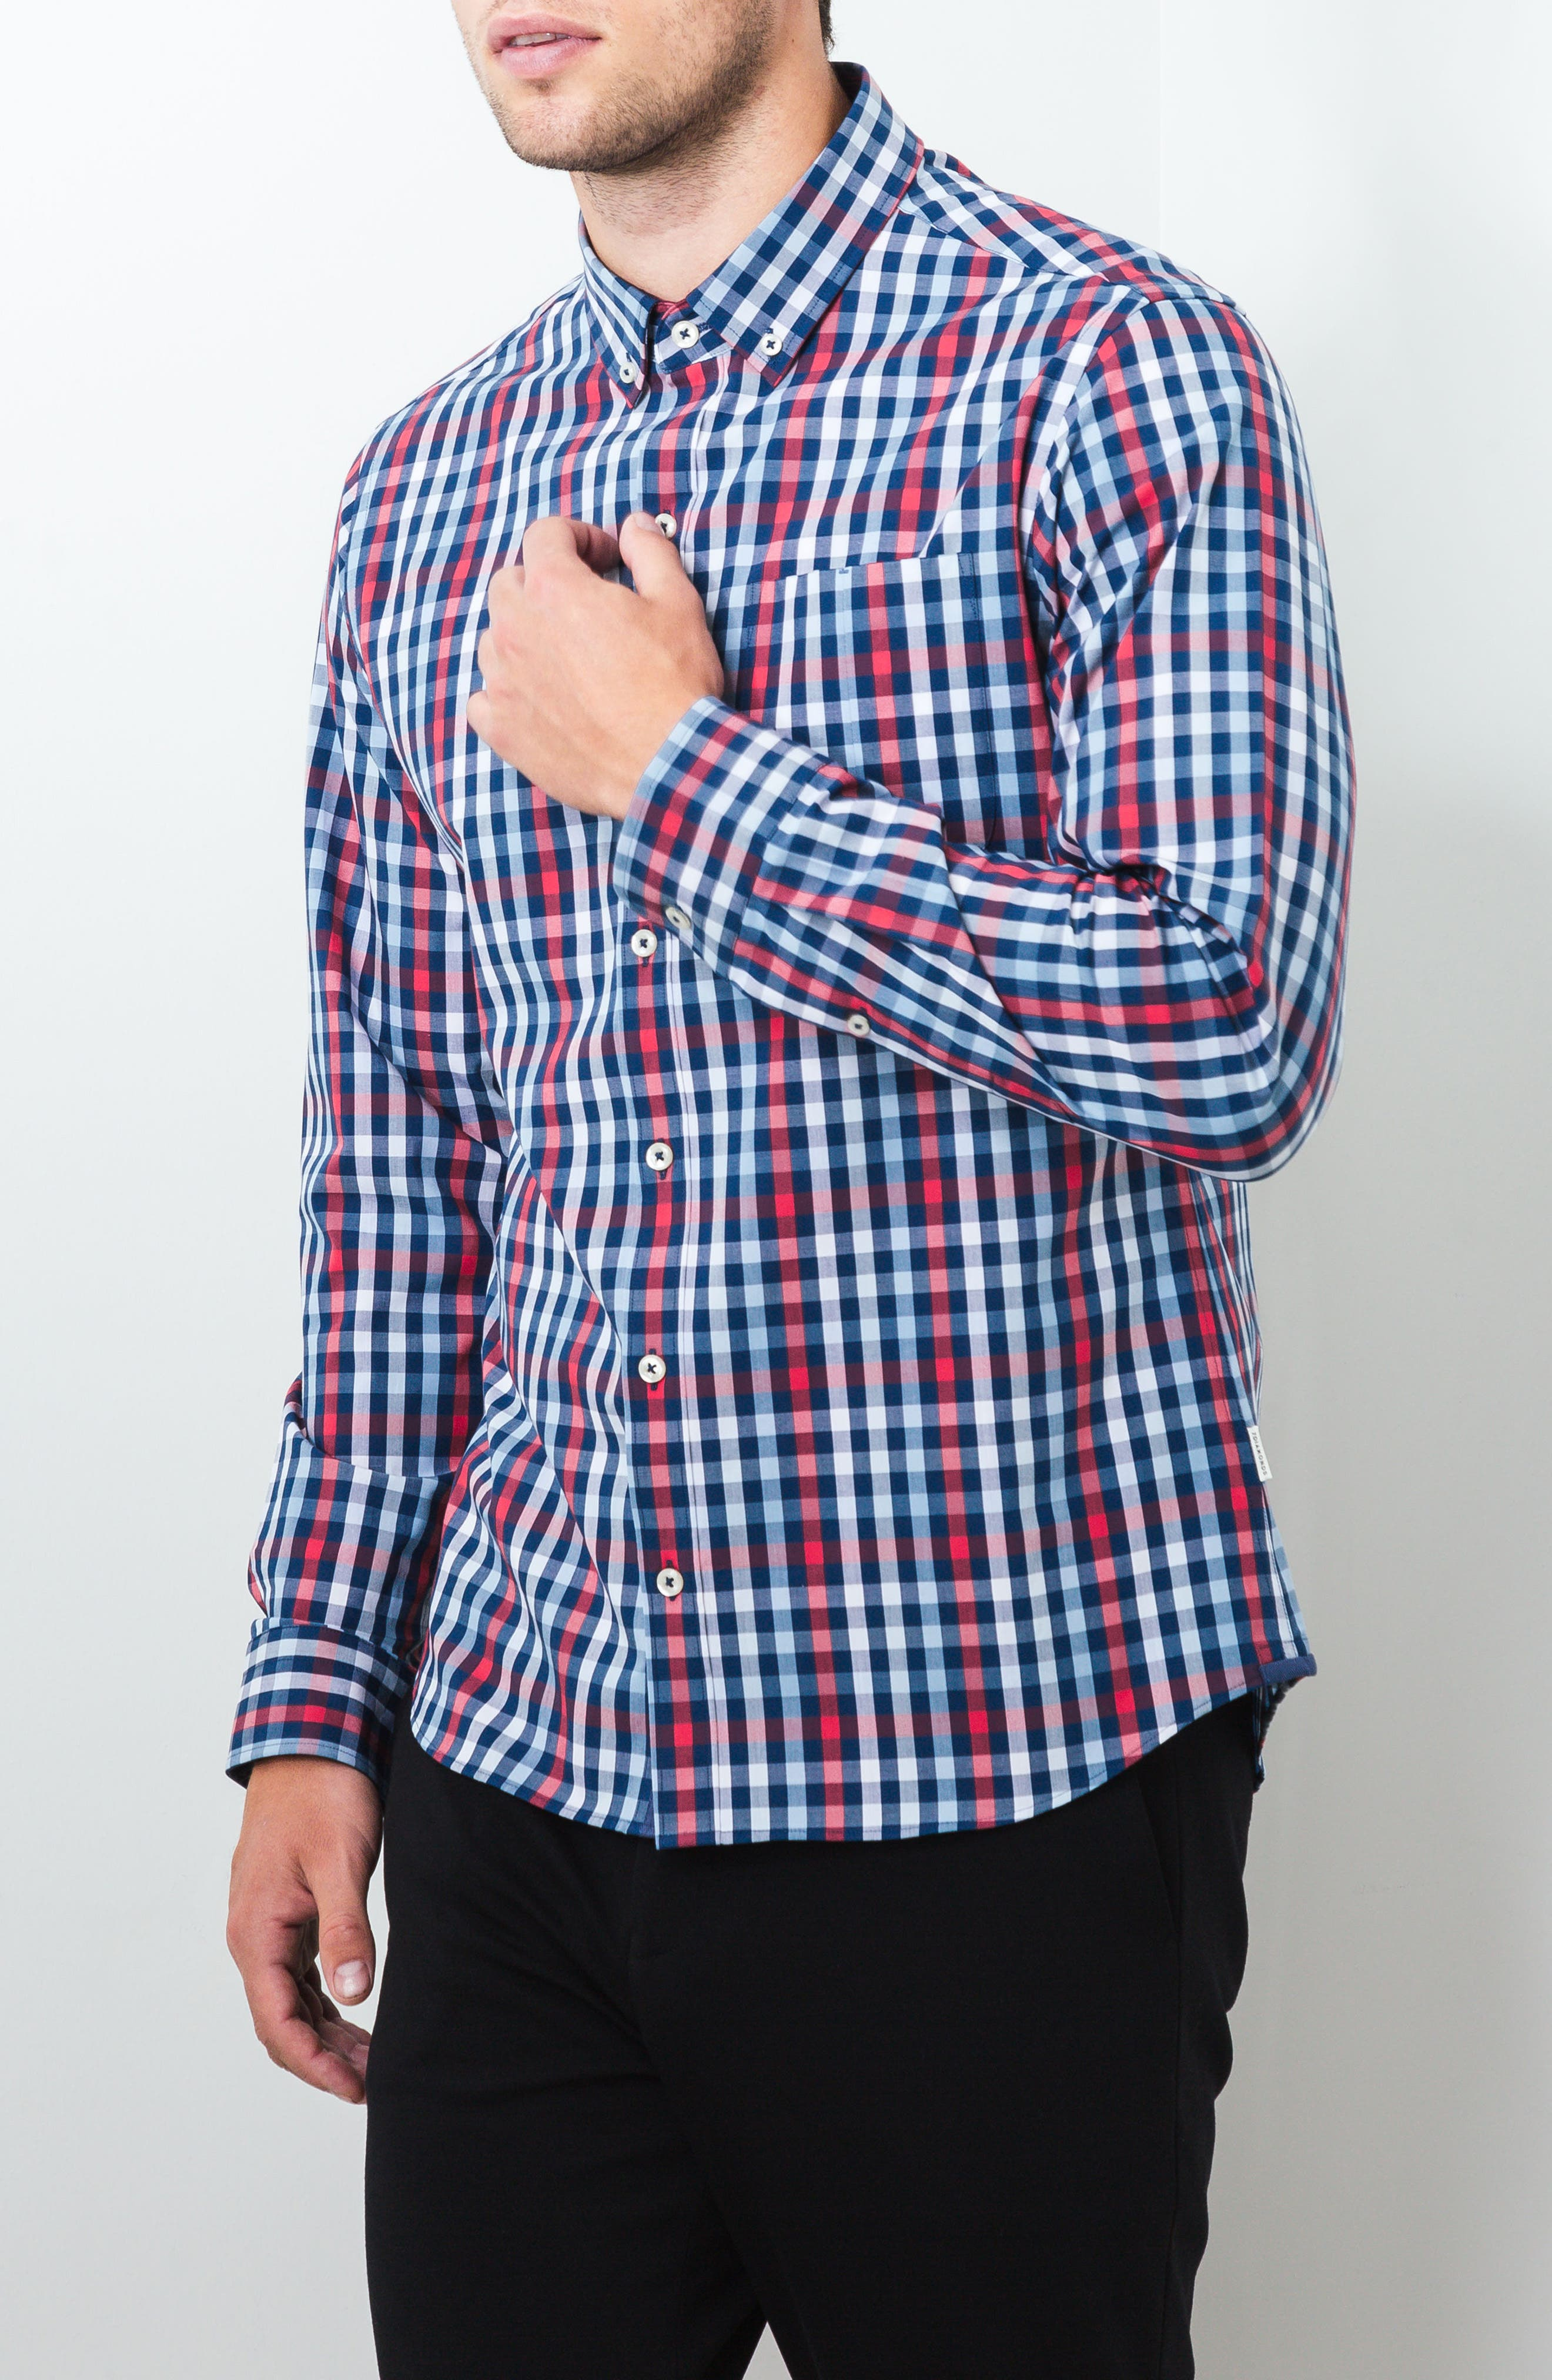 Year One Woven Shirt,                             Alternate thumbnail 4, color,                             410